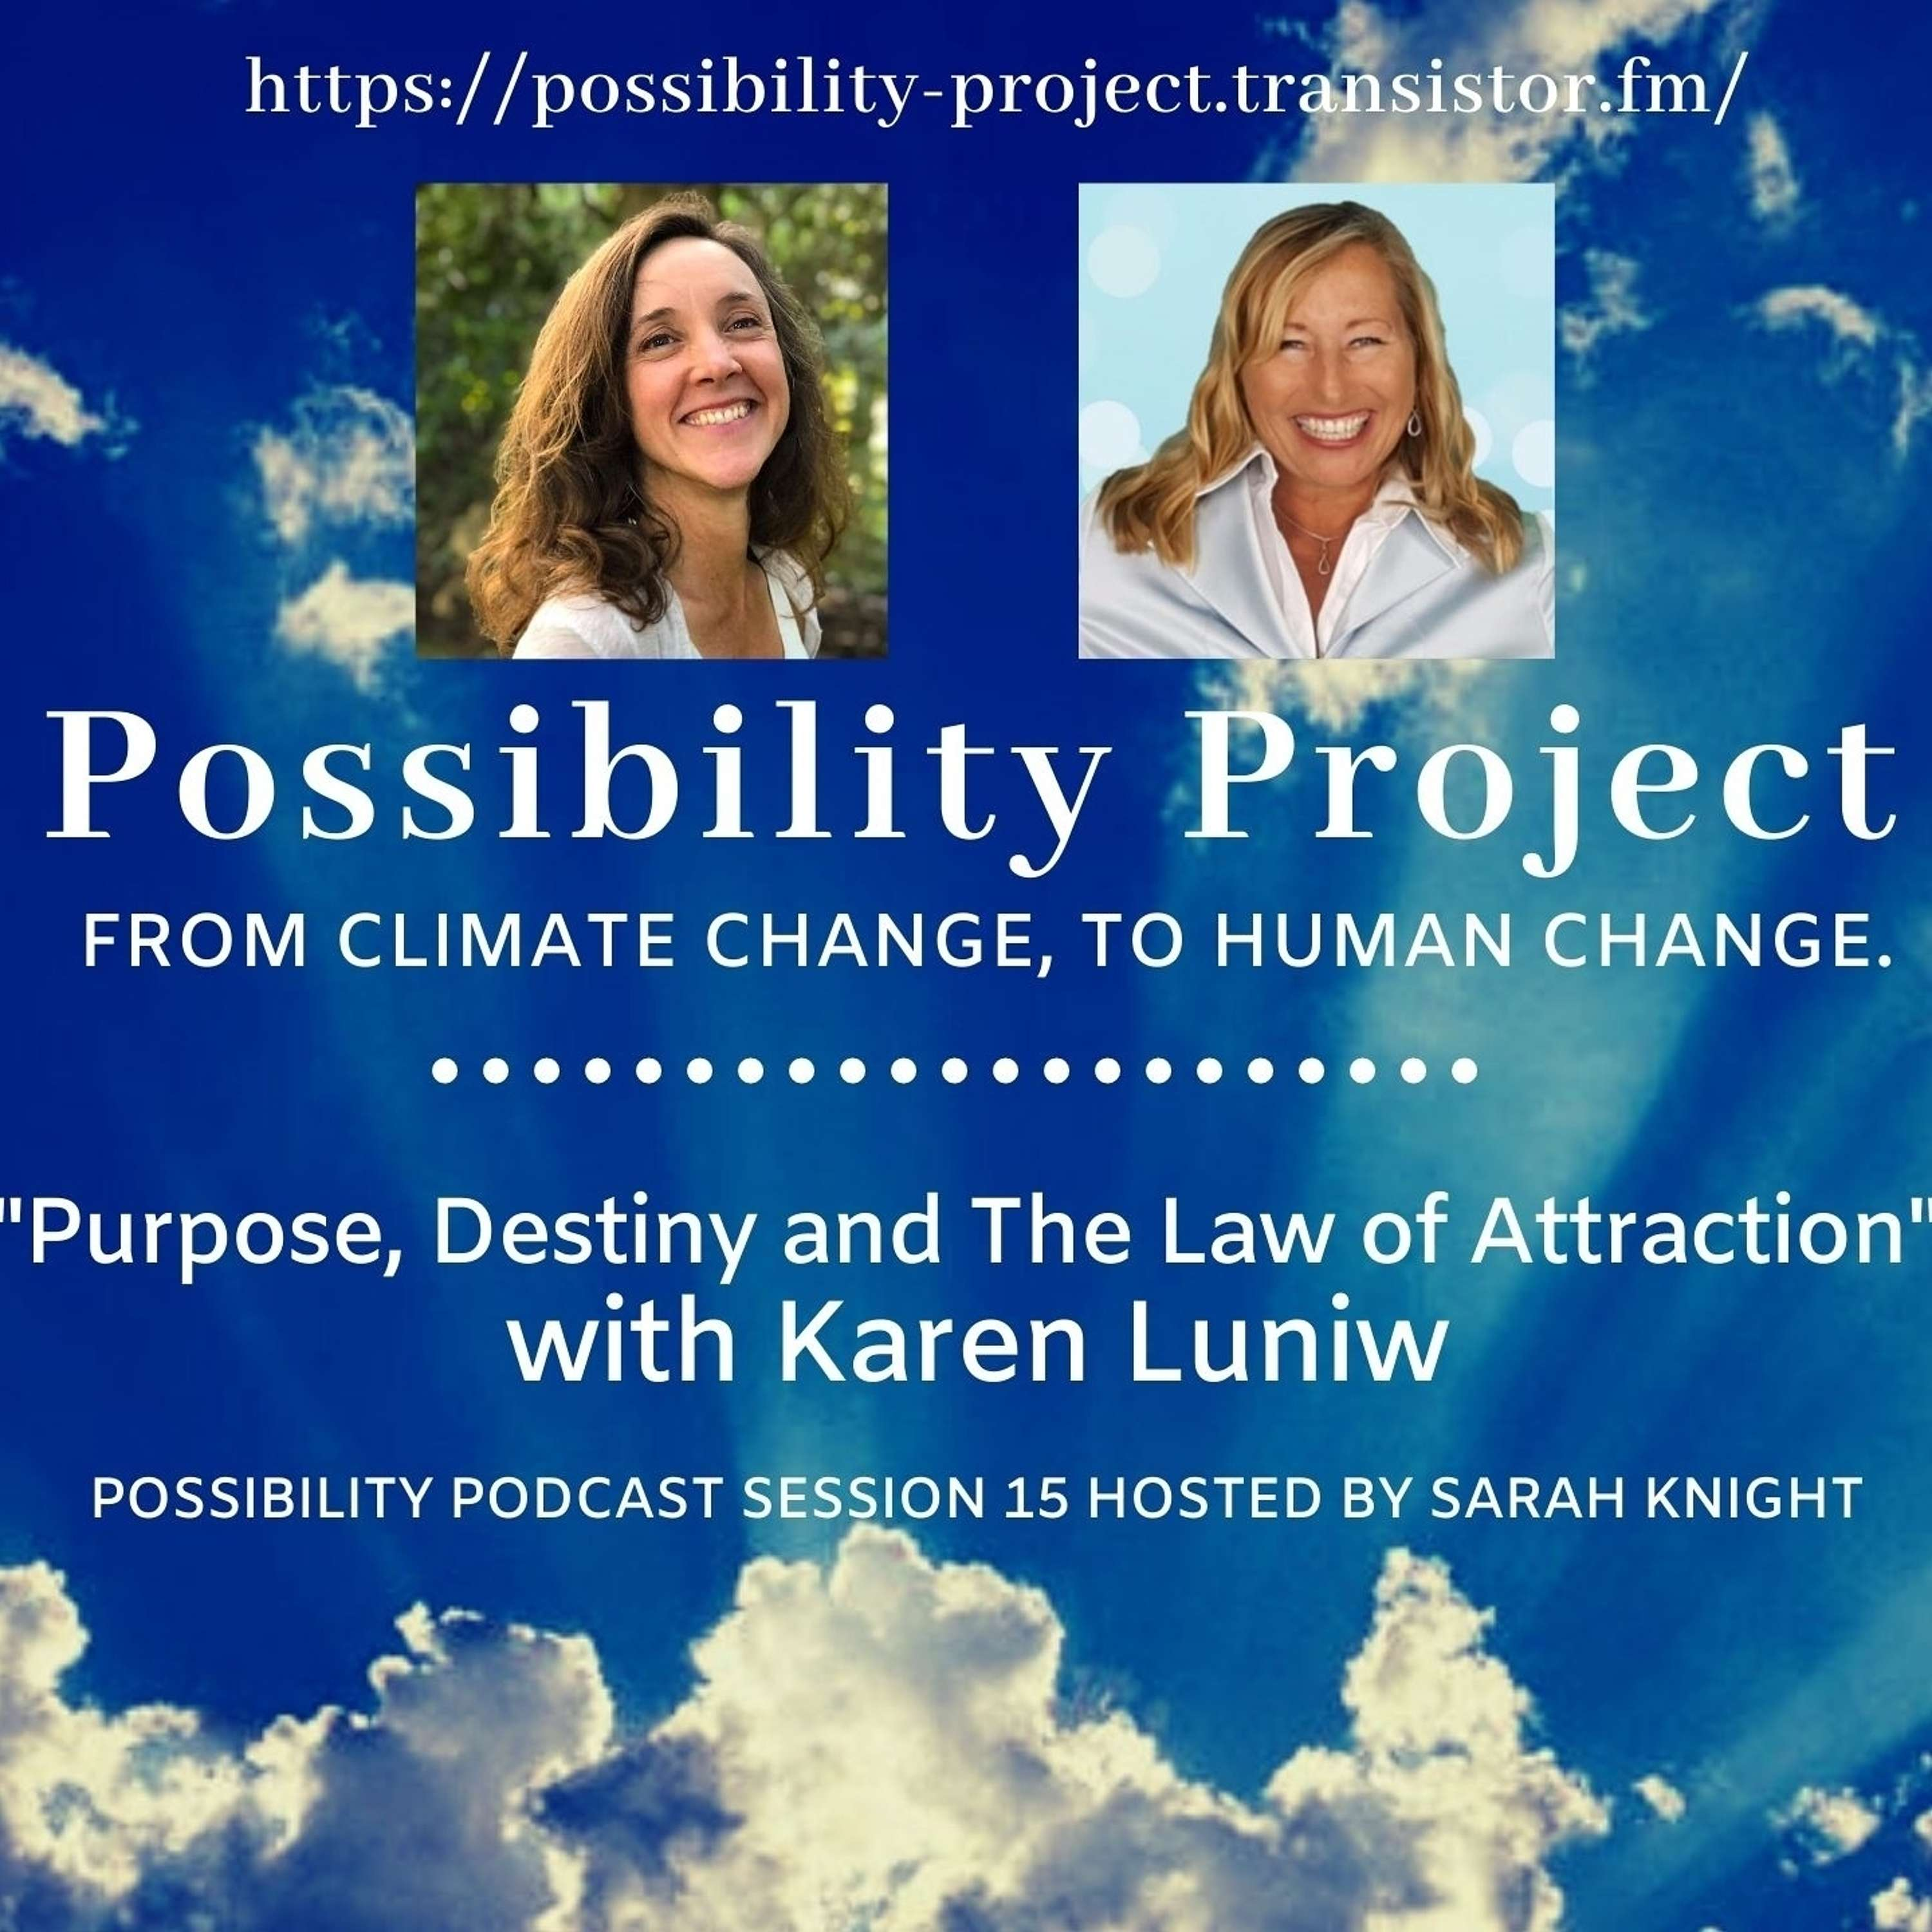 Purpose, Destiny and The Law of Attraction. Possibility Podcast Session 15